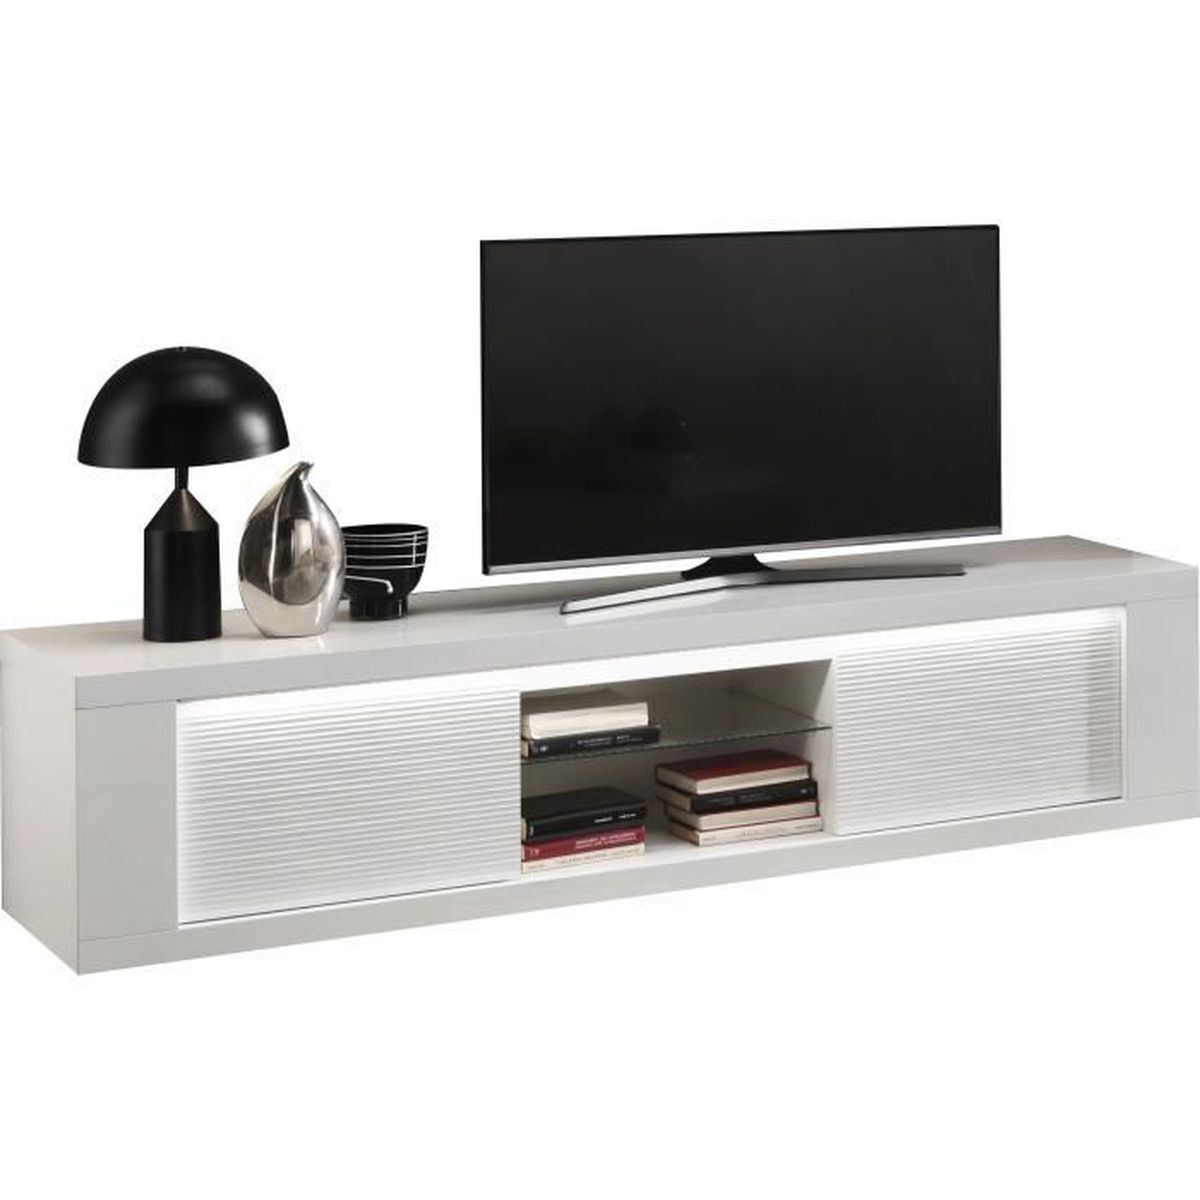 Meuble tv design a 2 portes 195 cm blanc laqu brillant avec clairages blanc - Meuble tv design discount ...